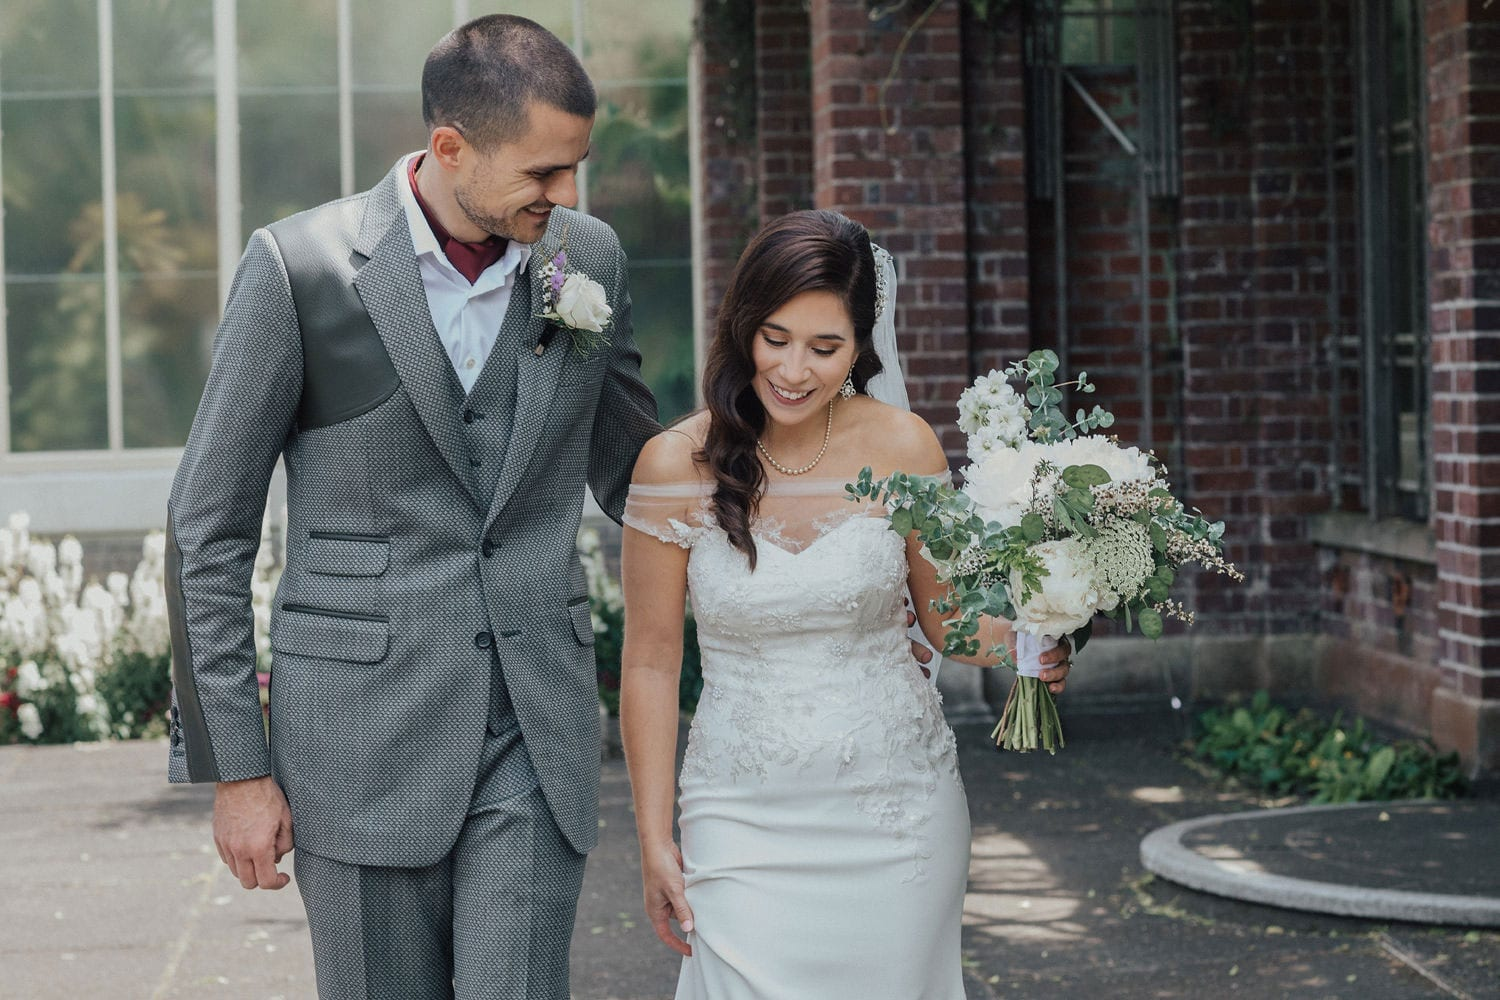 Vinka Design Features Real Weddings - bride wearing custom made lace wedding gown. Bride and groom walk